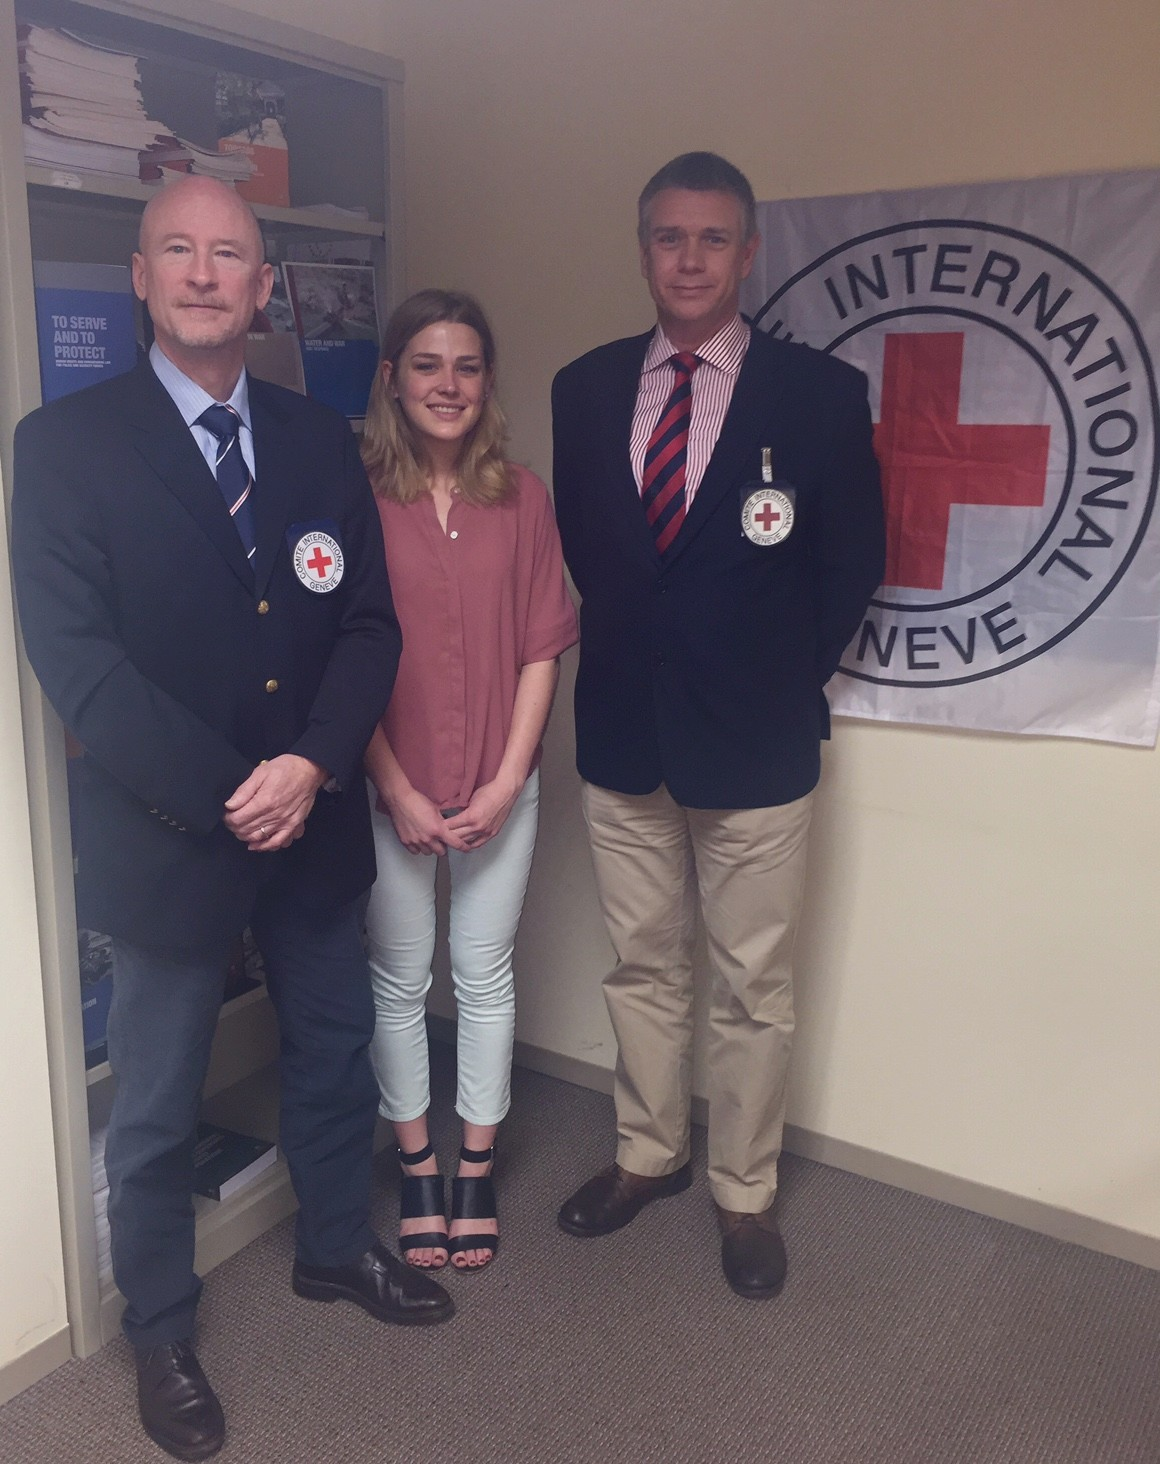 Washington, D.C.: Martin Lacourt, Senior Armed Forces Delegate, Peter Evans, Armed Forces Delegate, and Carly Steffes, Armed Forces Assistant